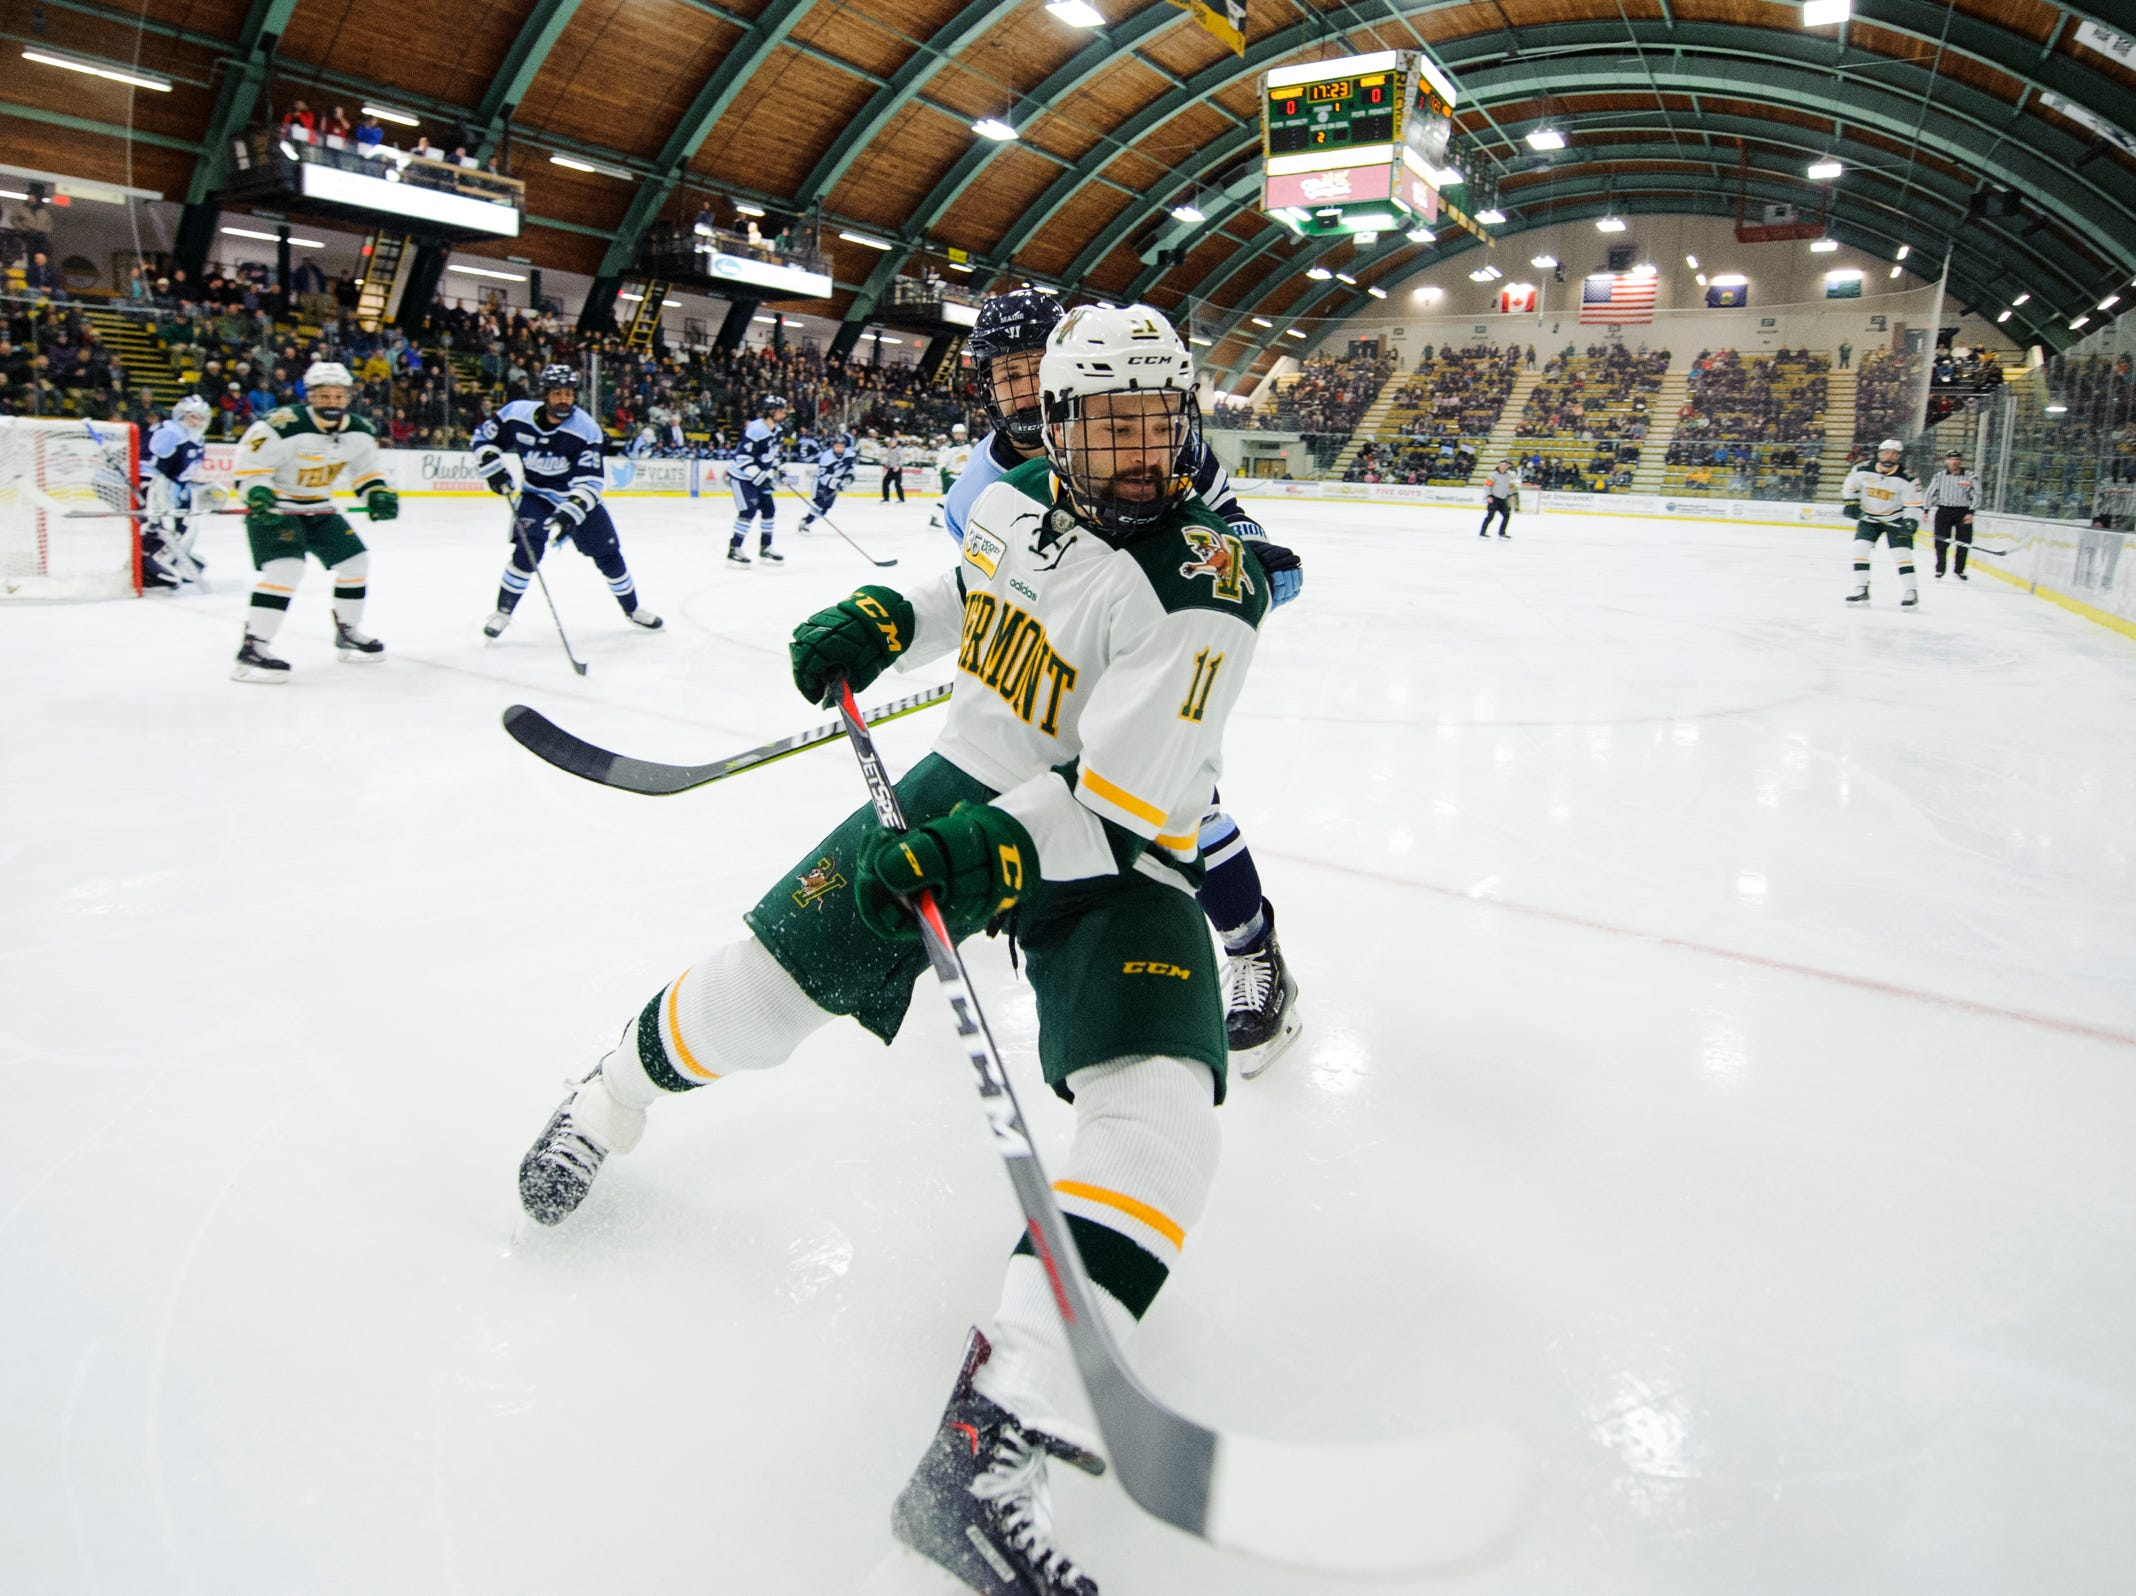 Vermont forward Conor O'Neil (11) battles for the puck in the corner during the men's hockey game between the Mine Black Bears and the Vermont Catamounts at Gutterson Field House on Friday night November 30, 2018 in Burlington.